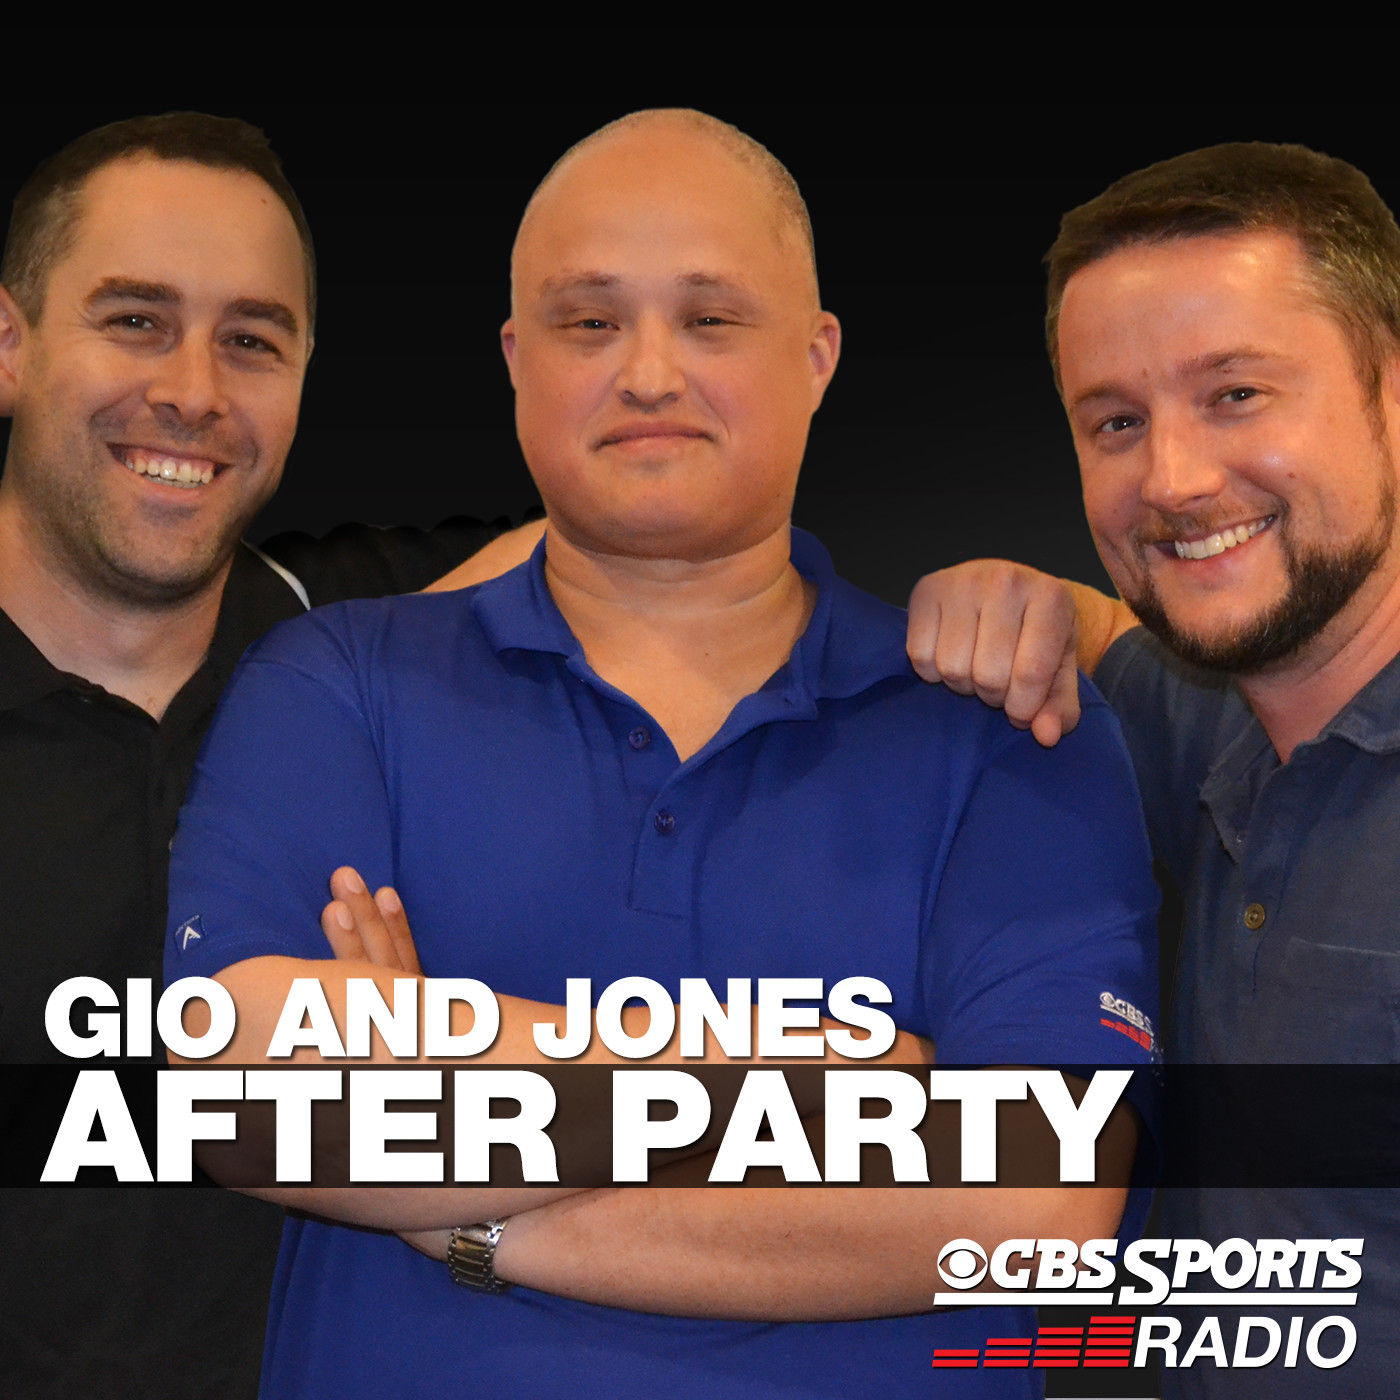 The Gio and Jones After Party